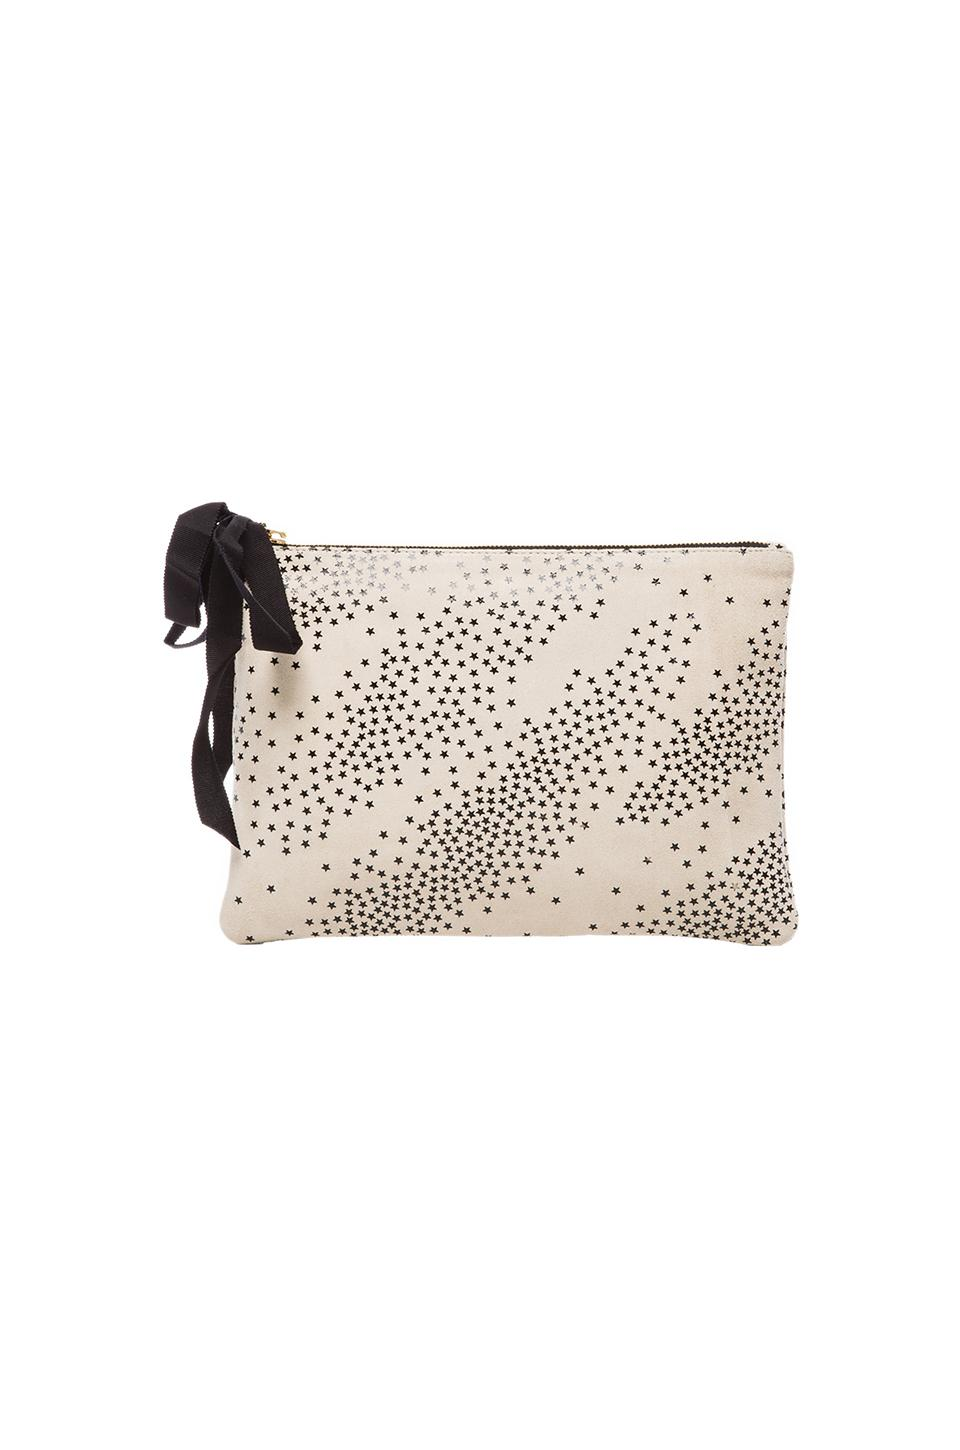 Clare V. Flat Clutch in Cream Star Print